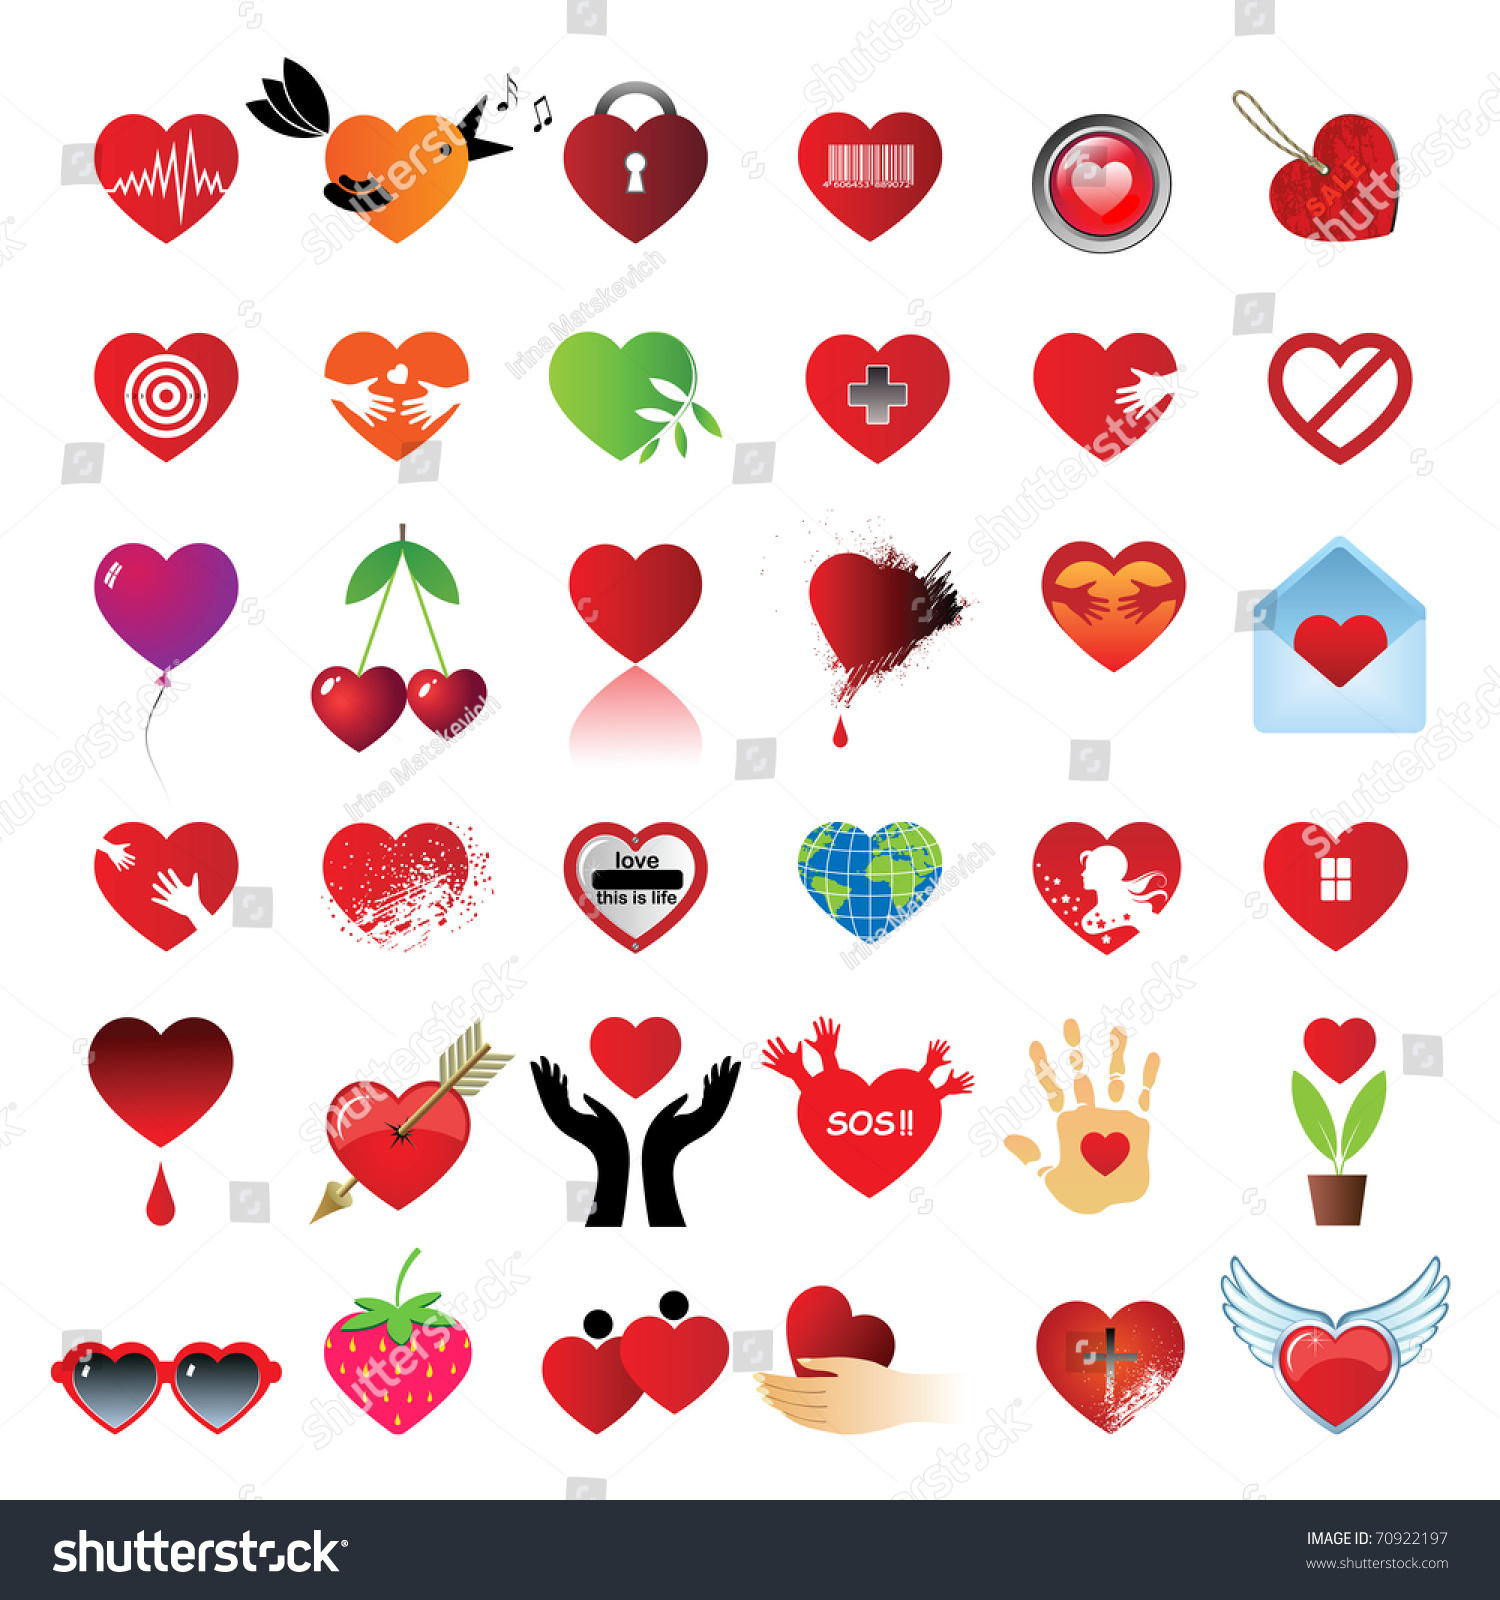 Set 36 hearts different symbols signs stock vector 70922197 different symbols and signs of heart buycottarizona Images